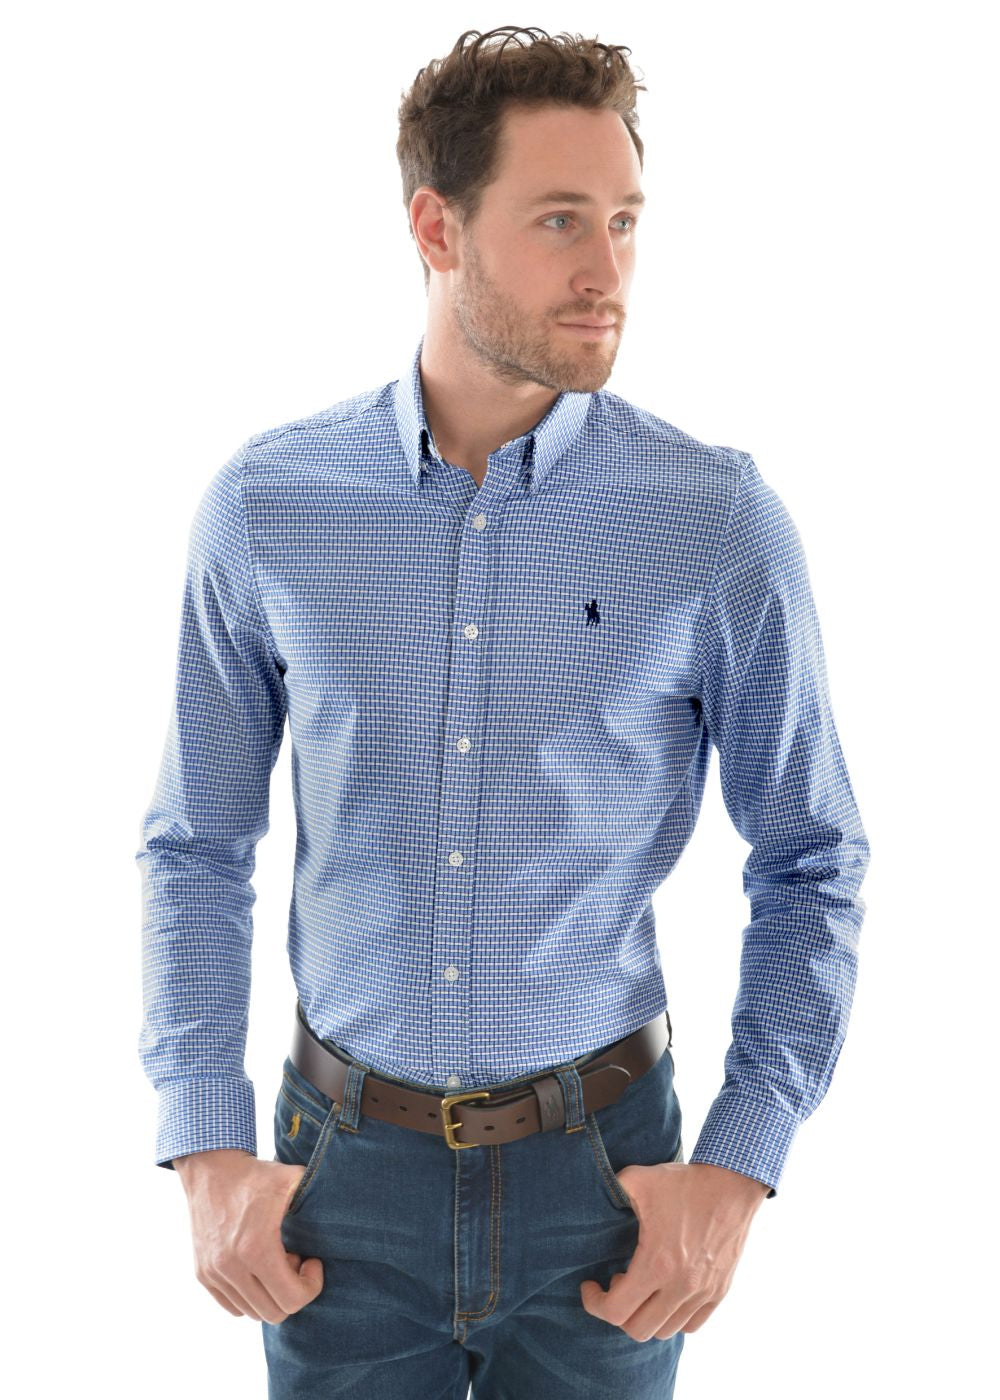 Thomas Cook Tyro Check Tailored Shirt, from Harley & Rose